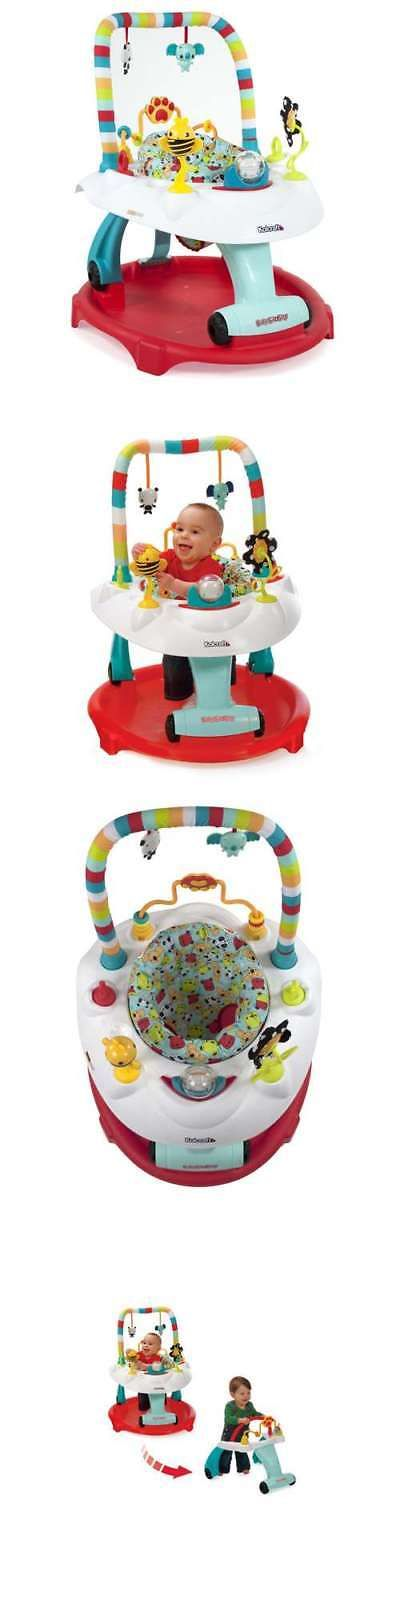 Walkers 134282: Kolcraft Baby Sit And Step 2-In-1 Activity Center And